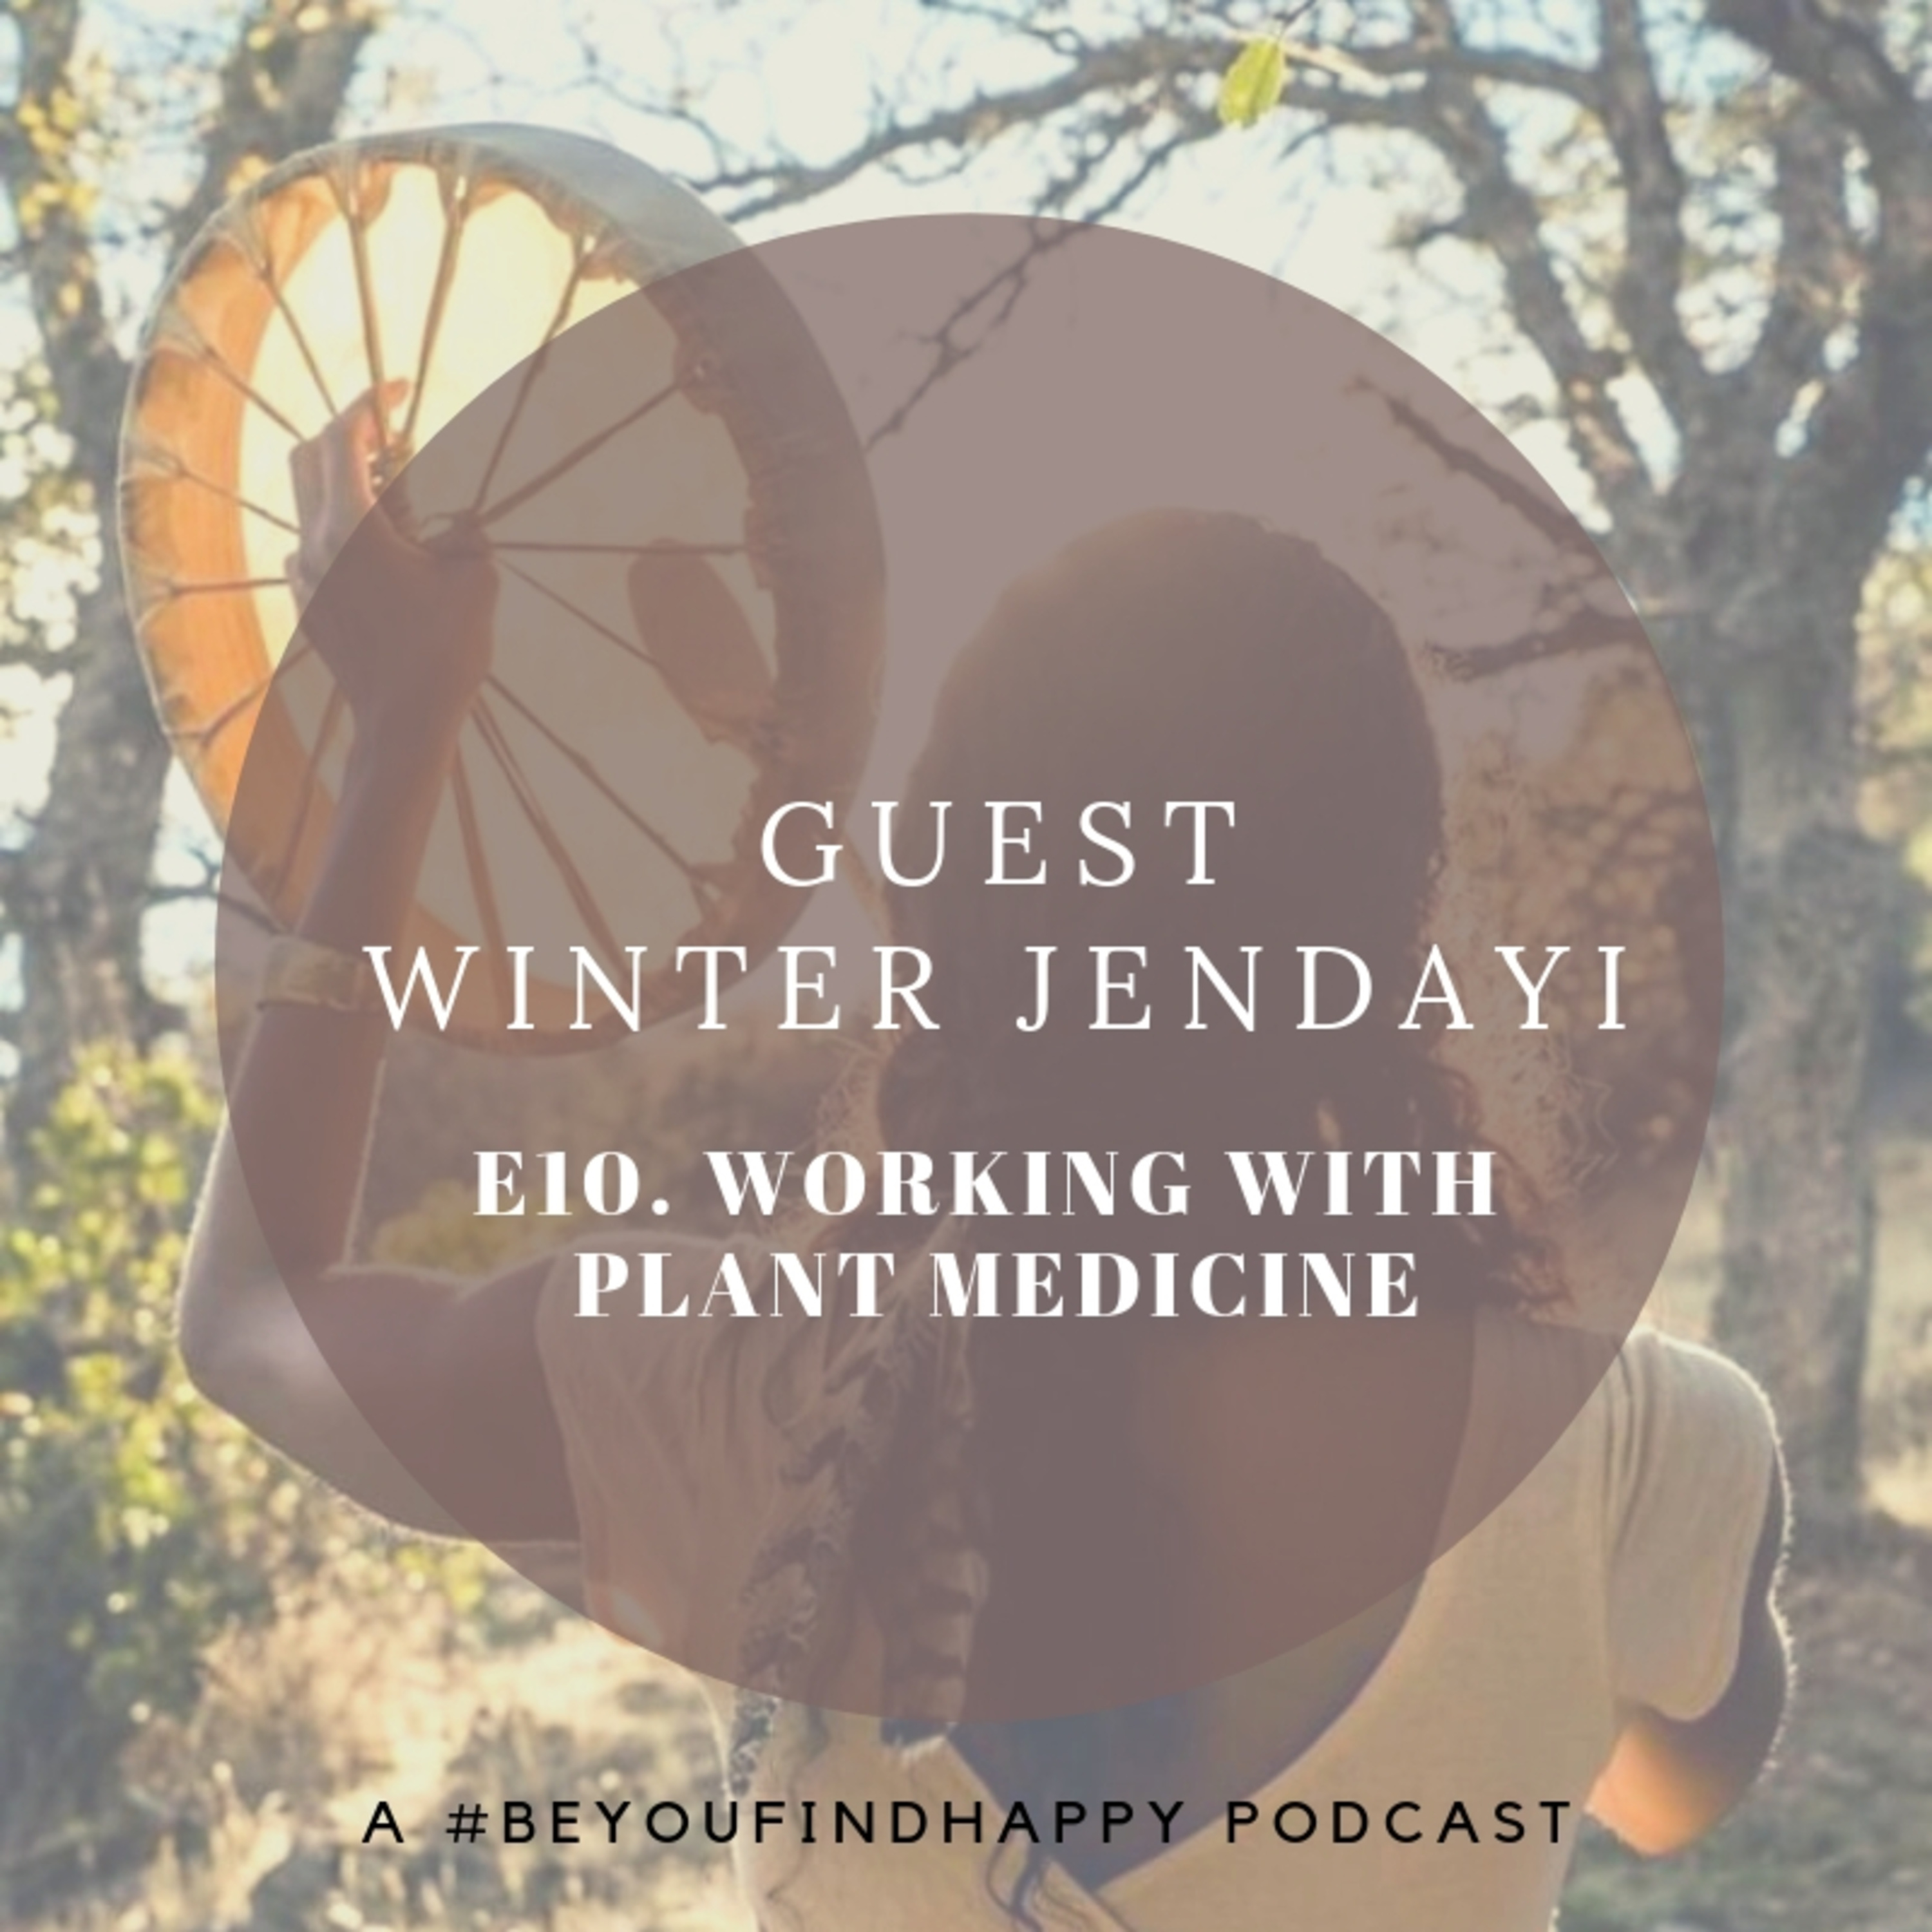 E10 GUEST Winter Jendayi: Working with Plant Medicine